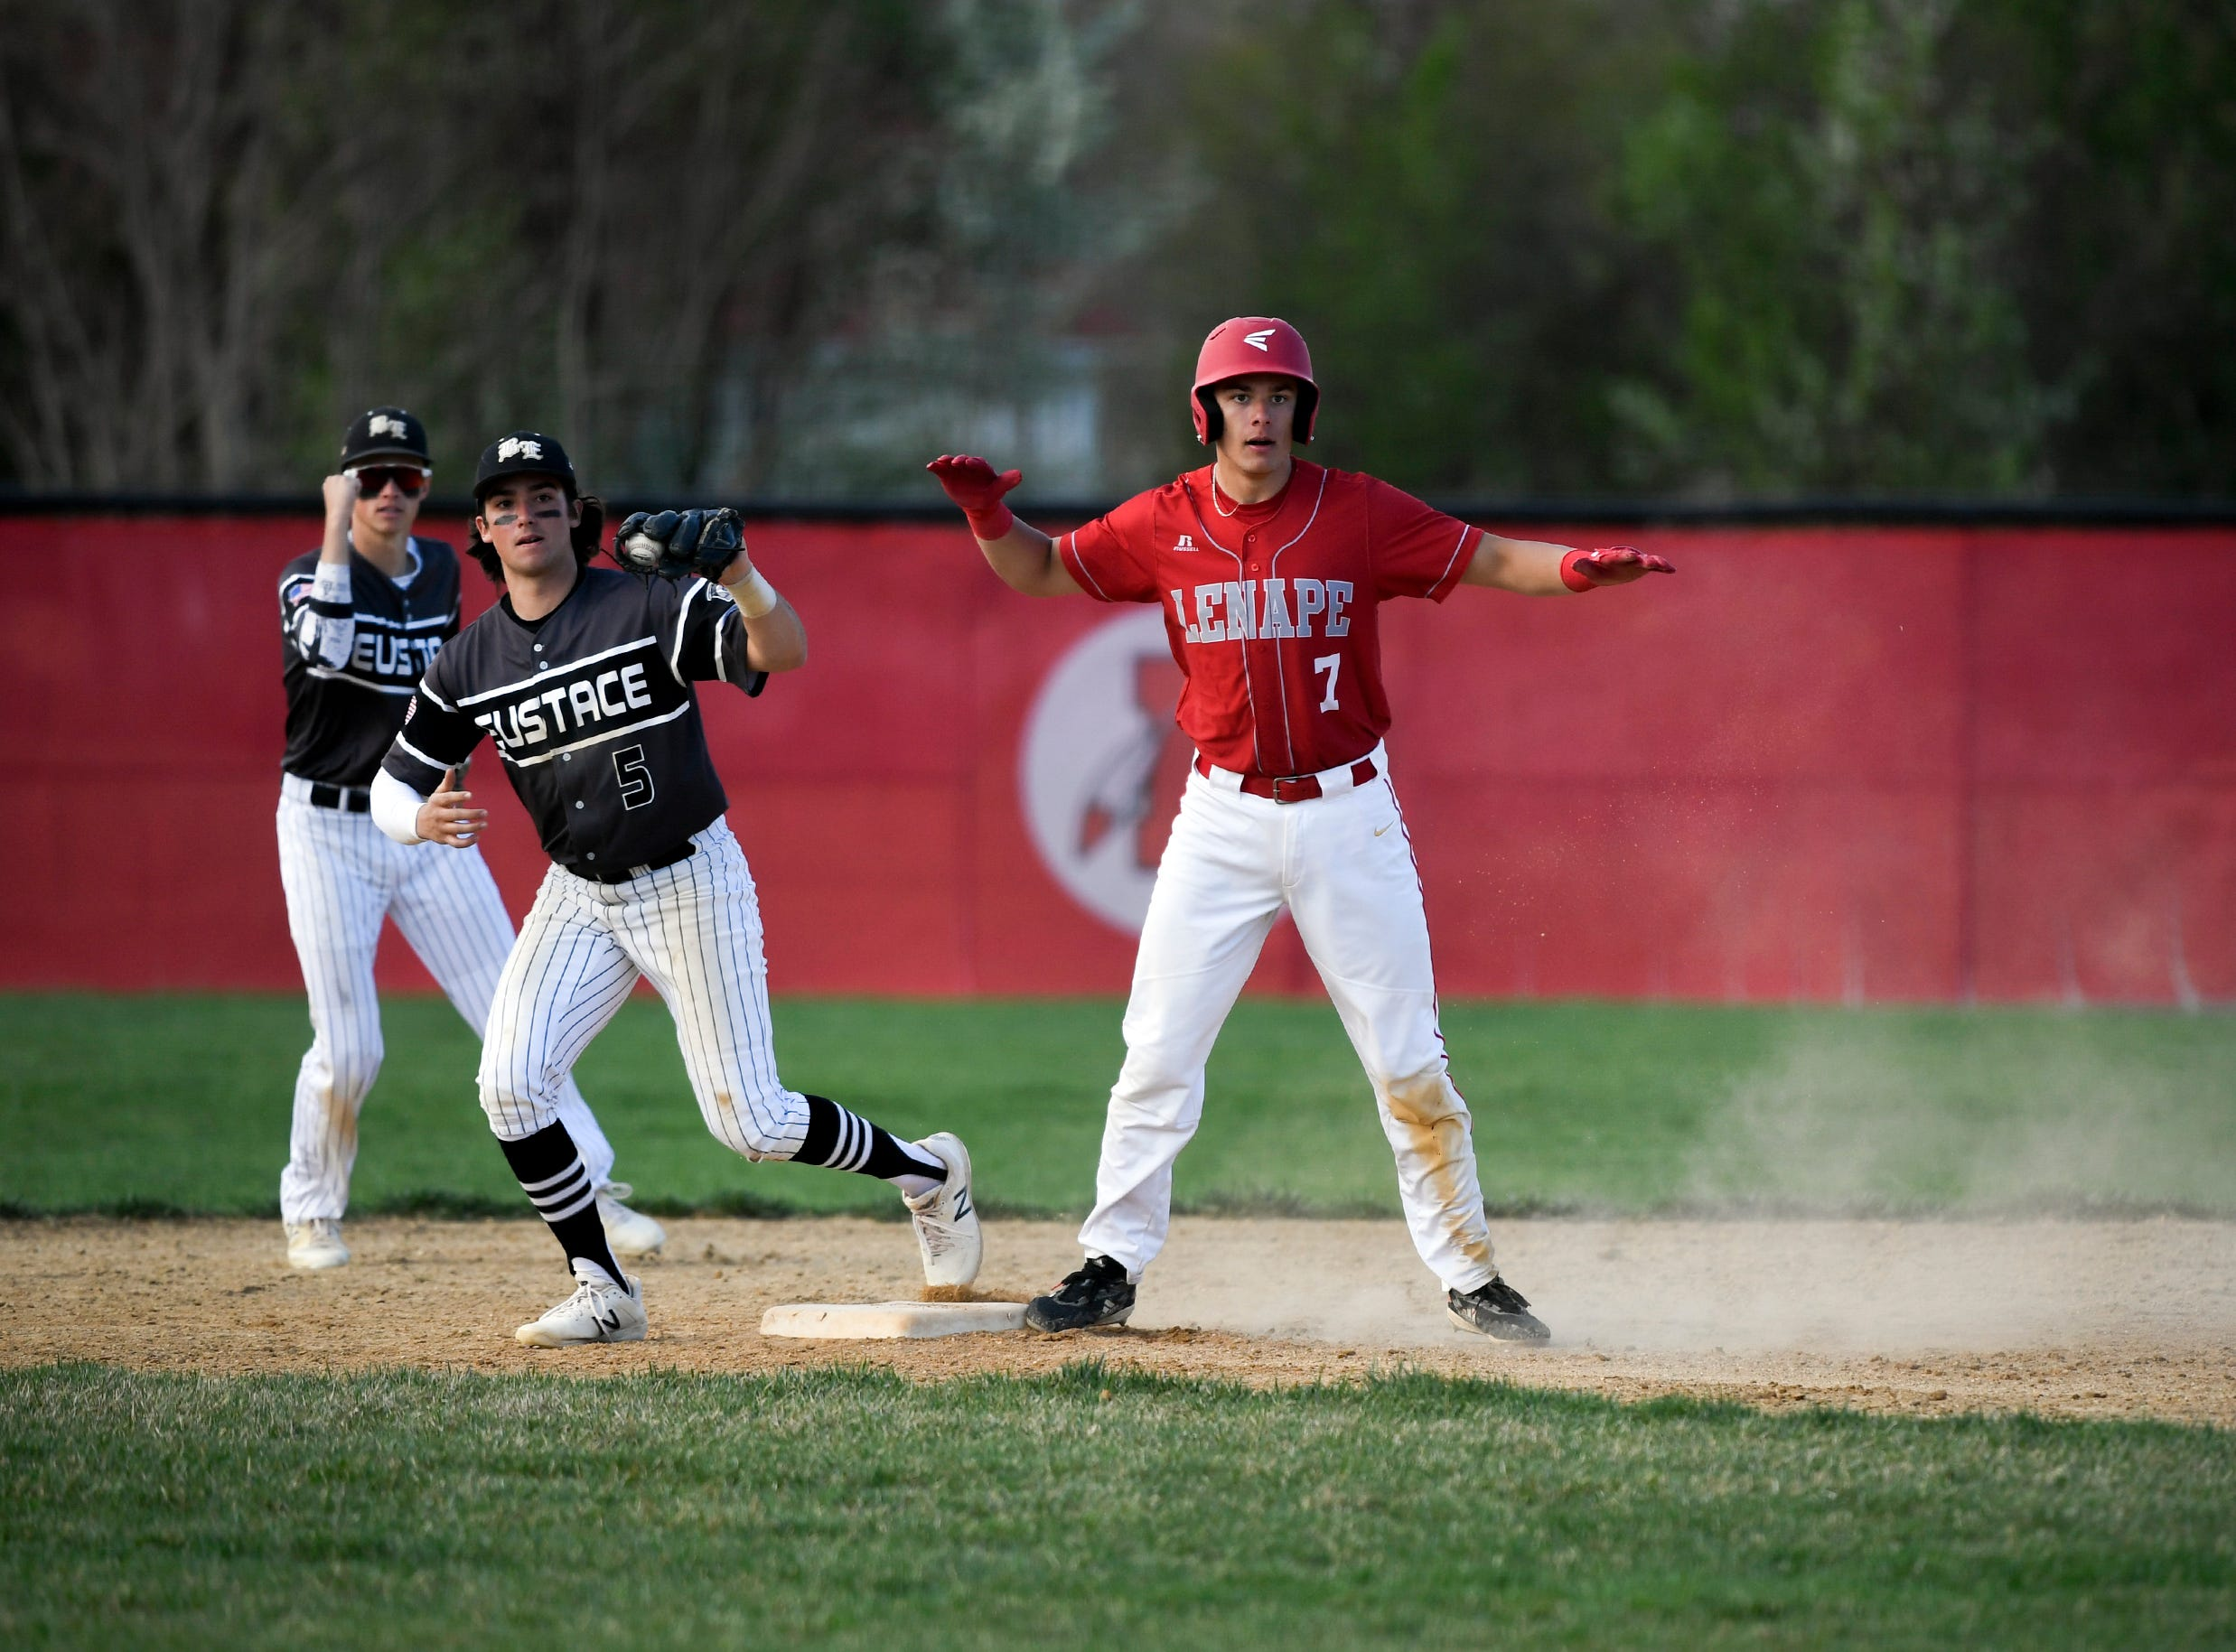 Lenape's Cade Hunter (7) is called out at second by Bishop Eustace's Matt Orlando (5) Tuesday, April 16, 2019 in Medford, N.J. Bishop Eustace won 5-3 and head coach Sam Tropiano earned his record-setting 673rd win.